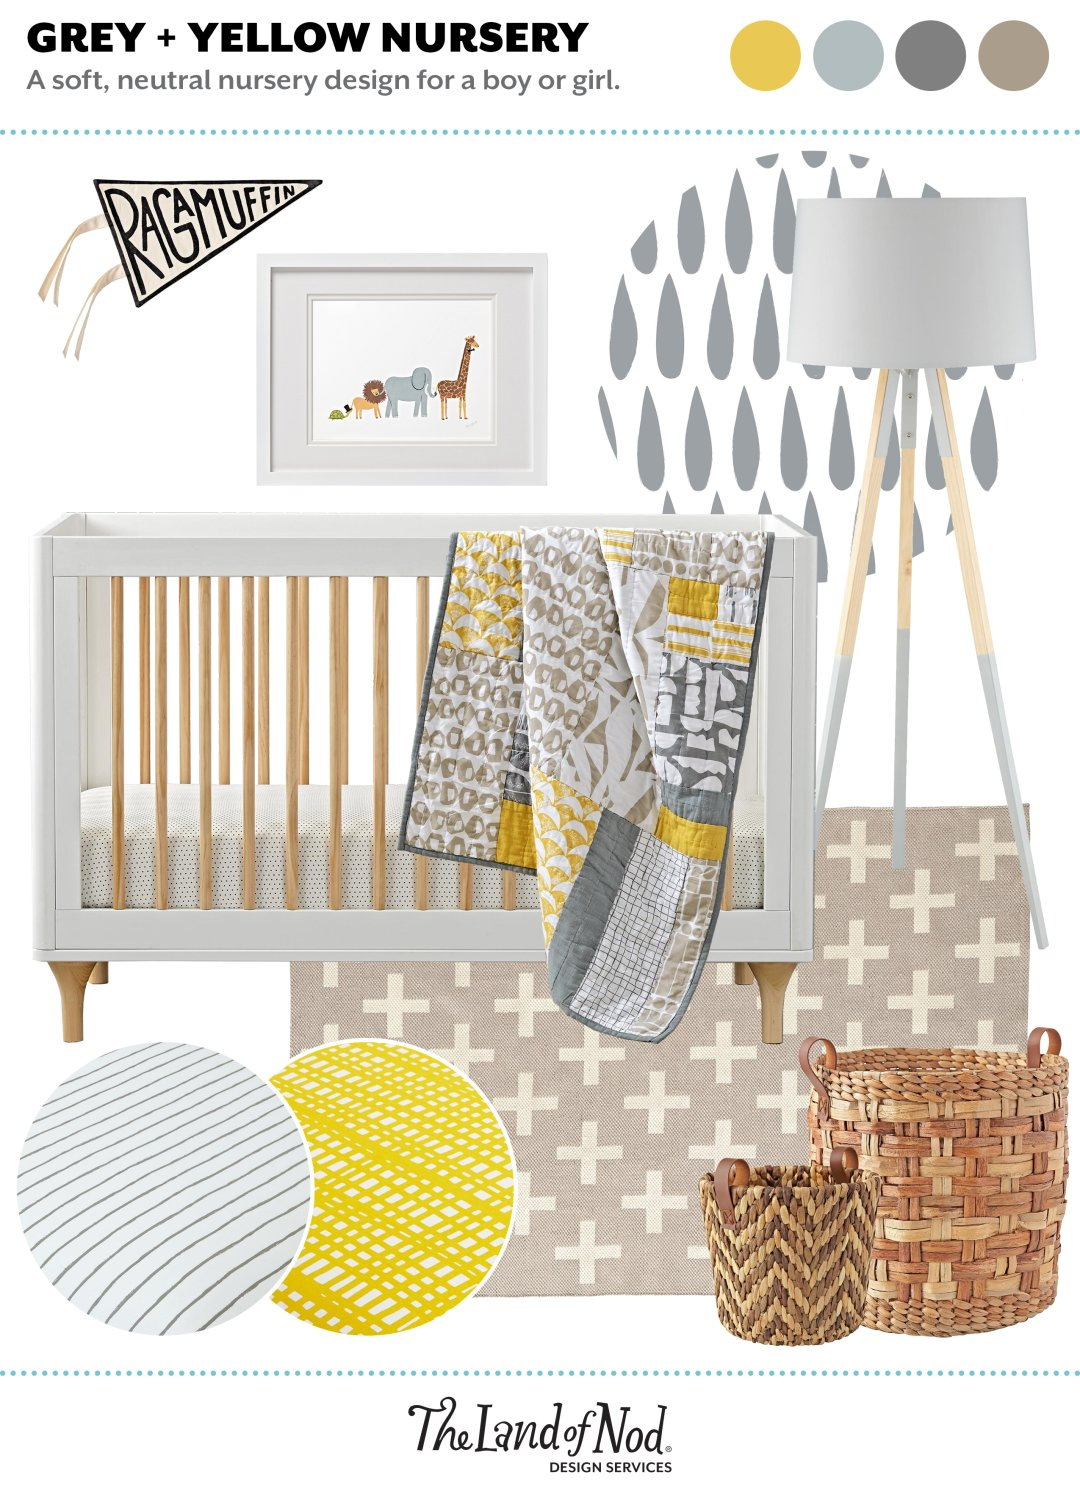 Grey & Yellow Neutral Nursery